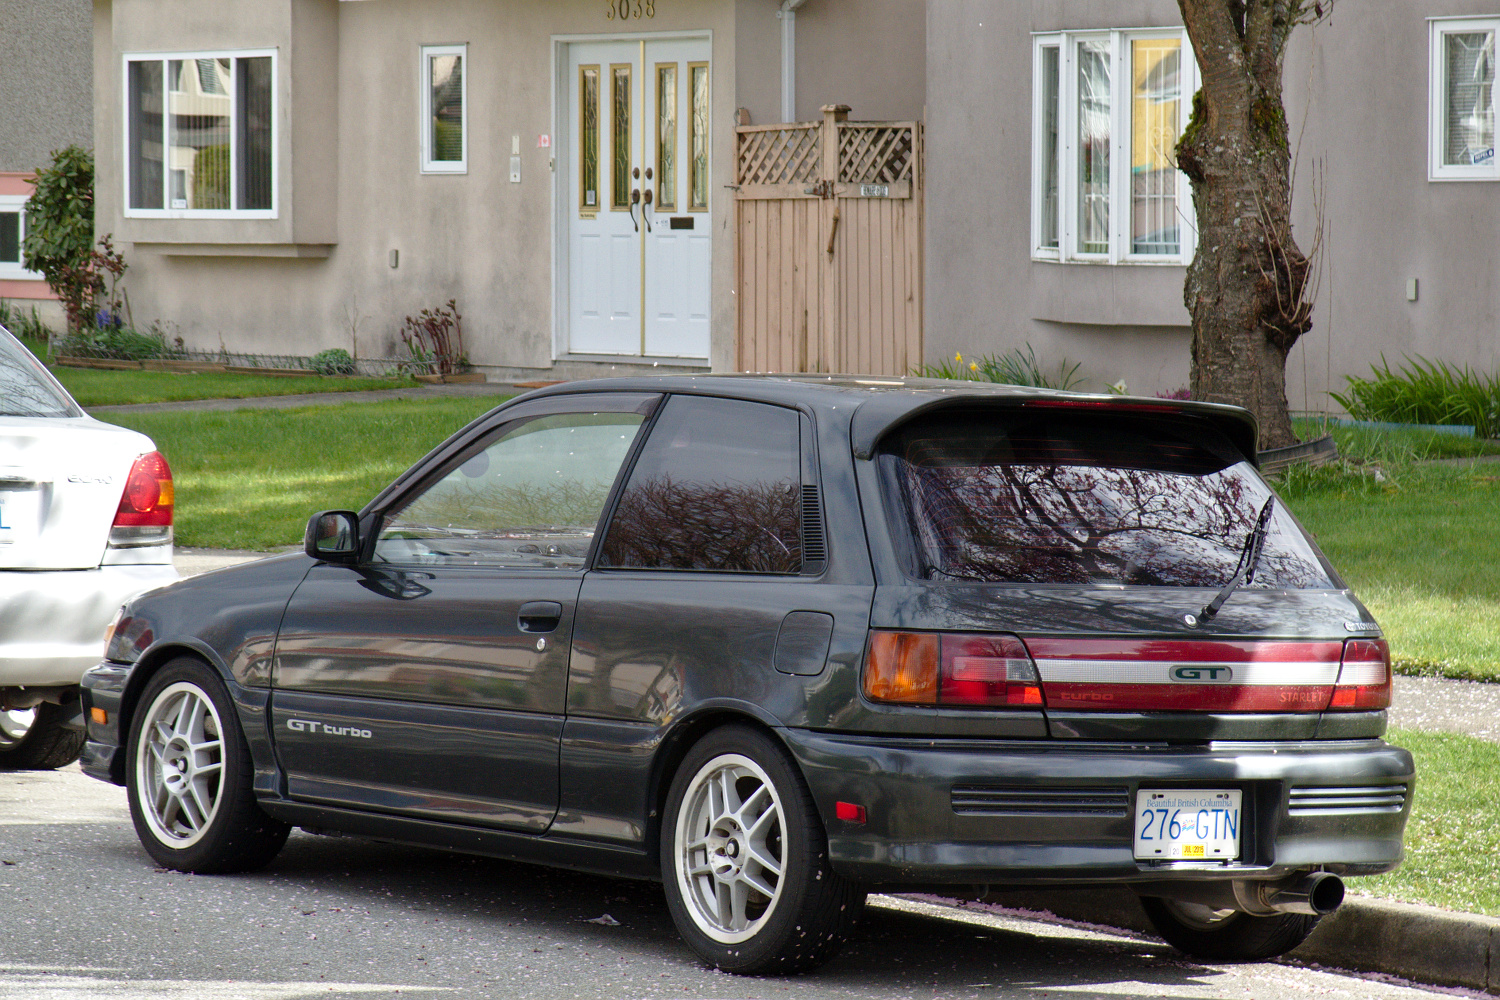 Old Parked Cars Vancouver 1990 Toyota Starlet Gt Turbo